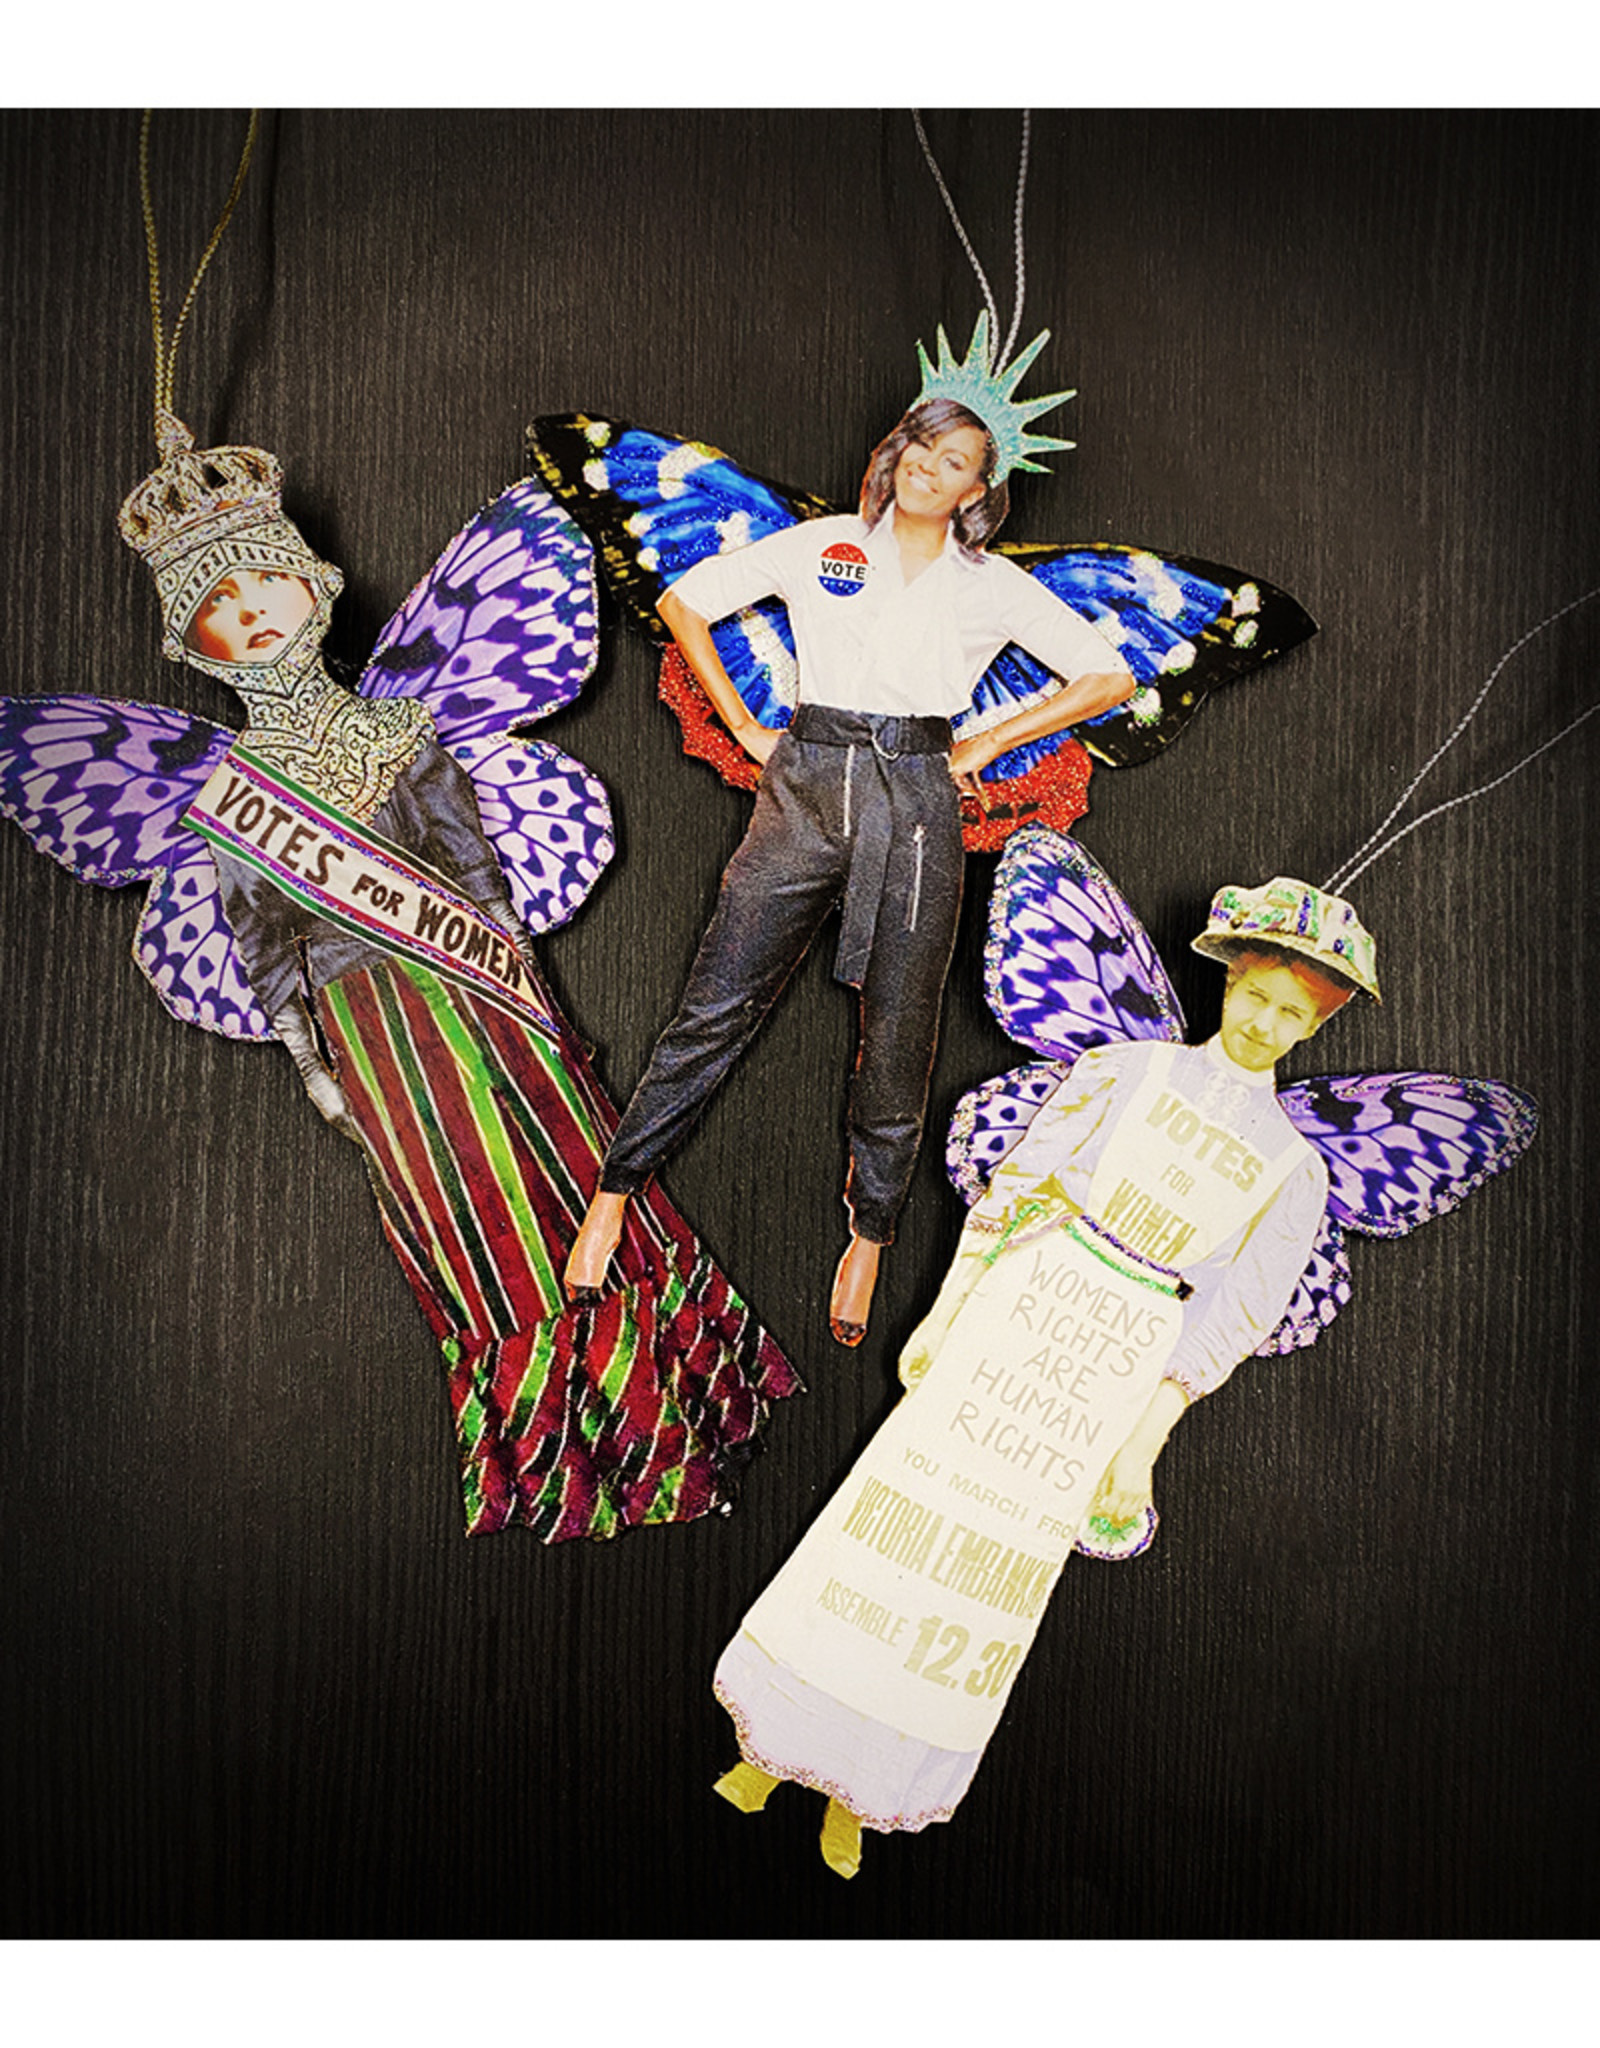 Another Girl Vote/Womens Rights Ornaments by Another Girl